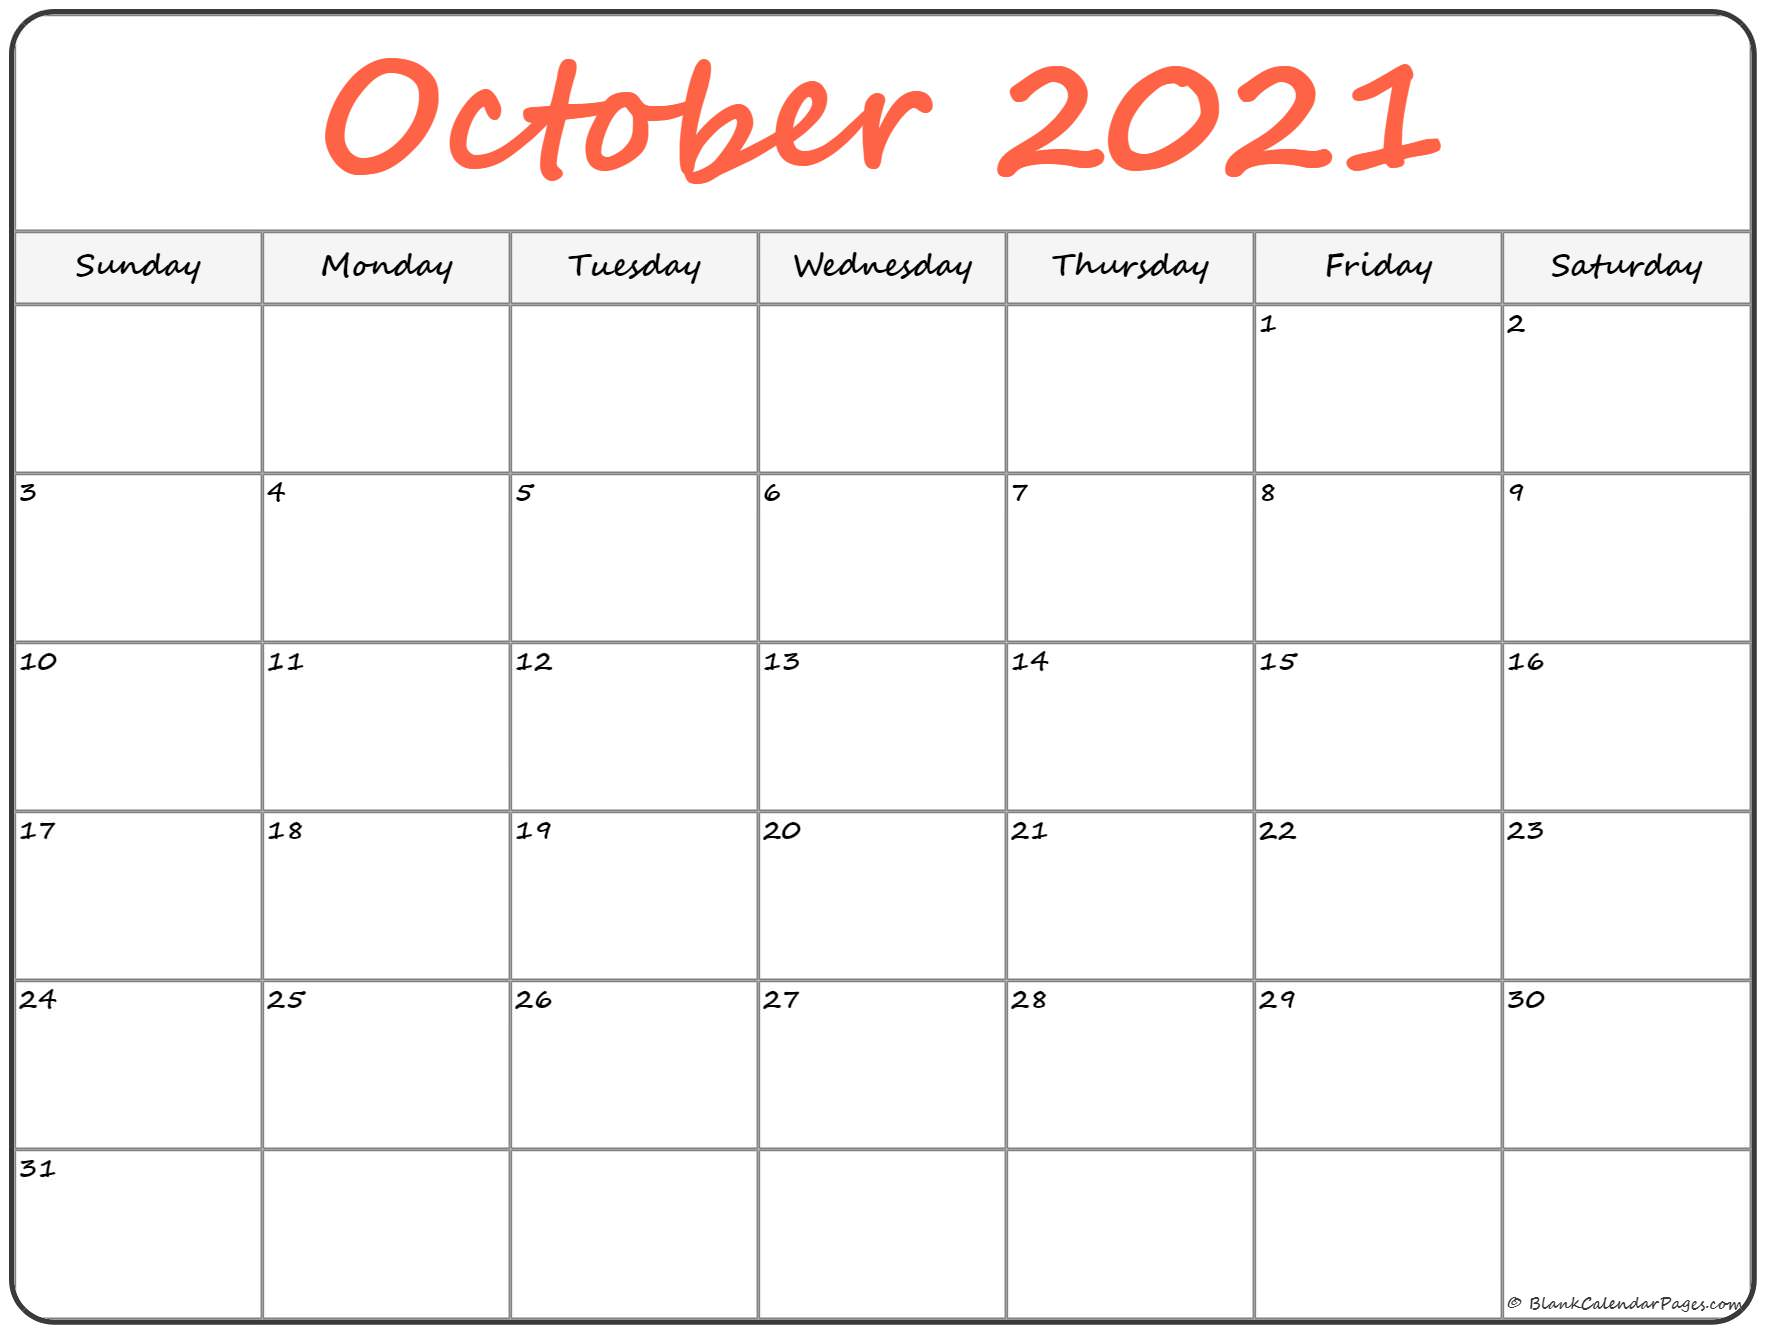 graphic regarding October Calendar Printable named Oct 2019 calendar totally free printable month-to-month calendars